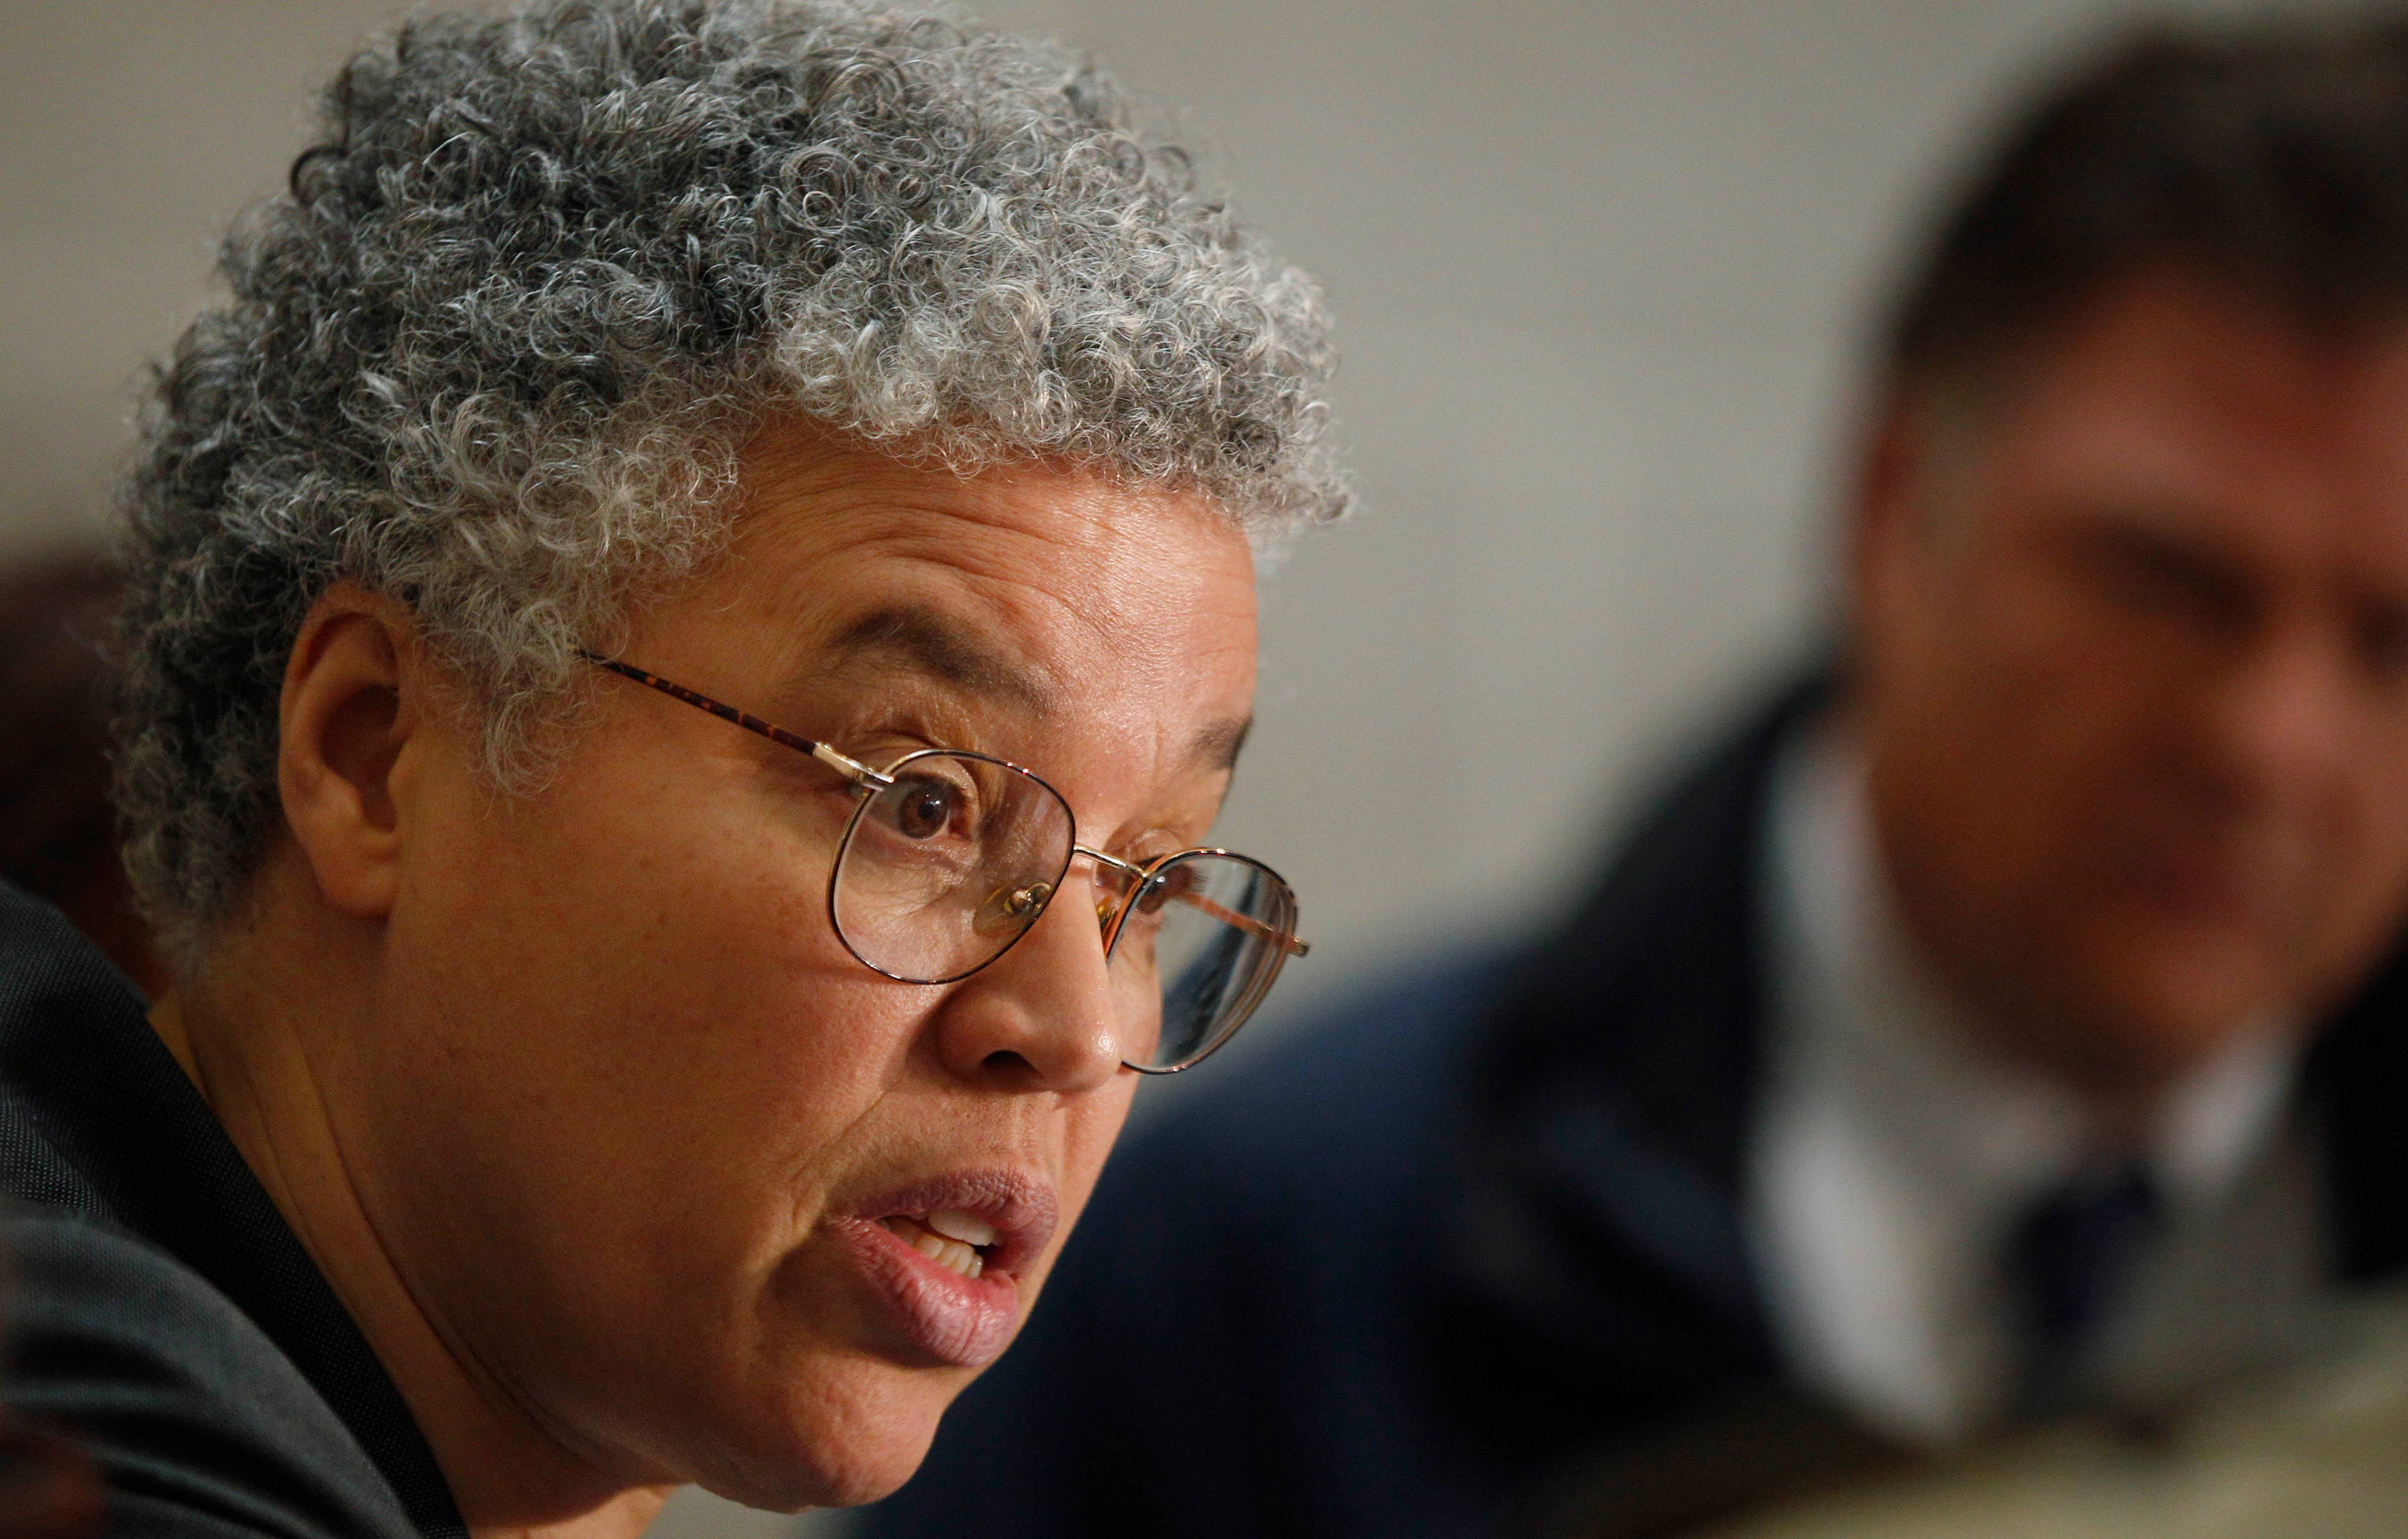 Cook County President Toni Preckwinkle has supported a tax on sweetened beverages in Cook County, but a repeal of the tax could come up for a vote this week at the county board meeting.